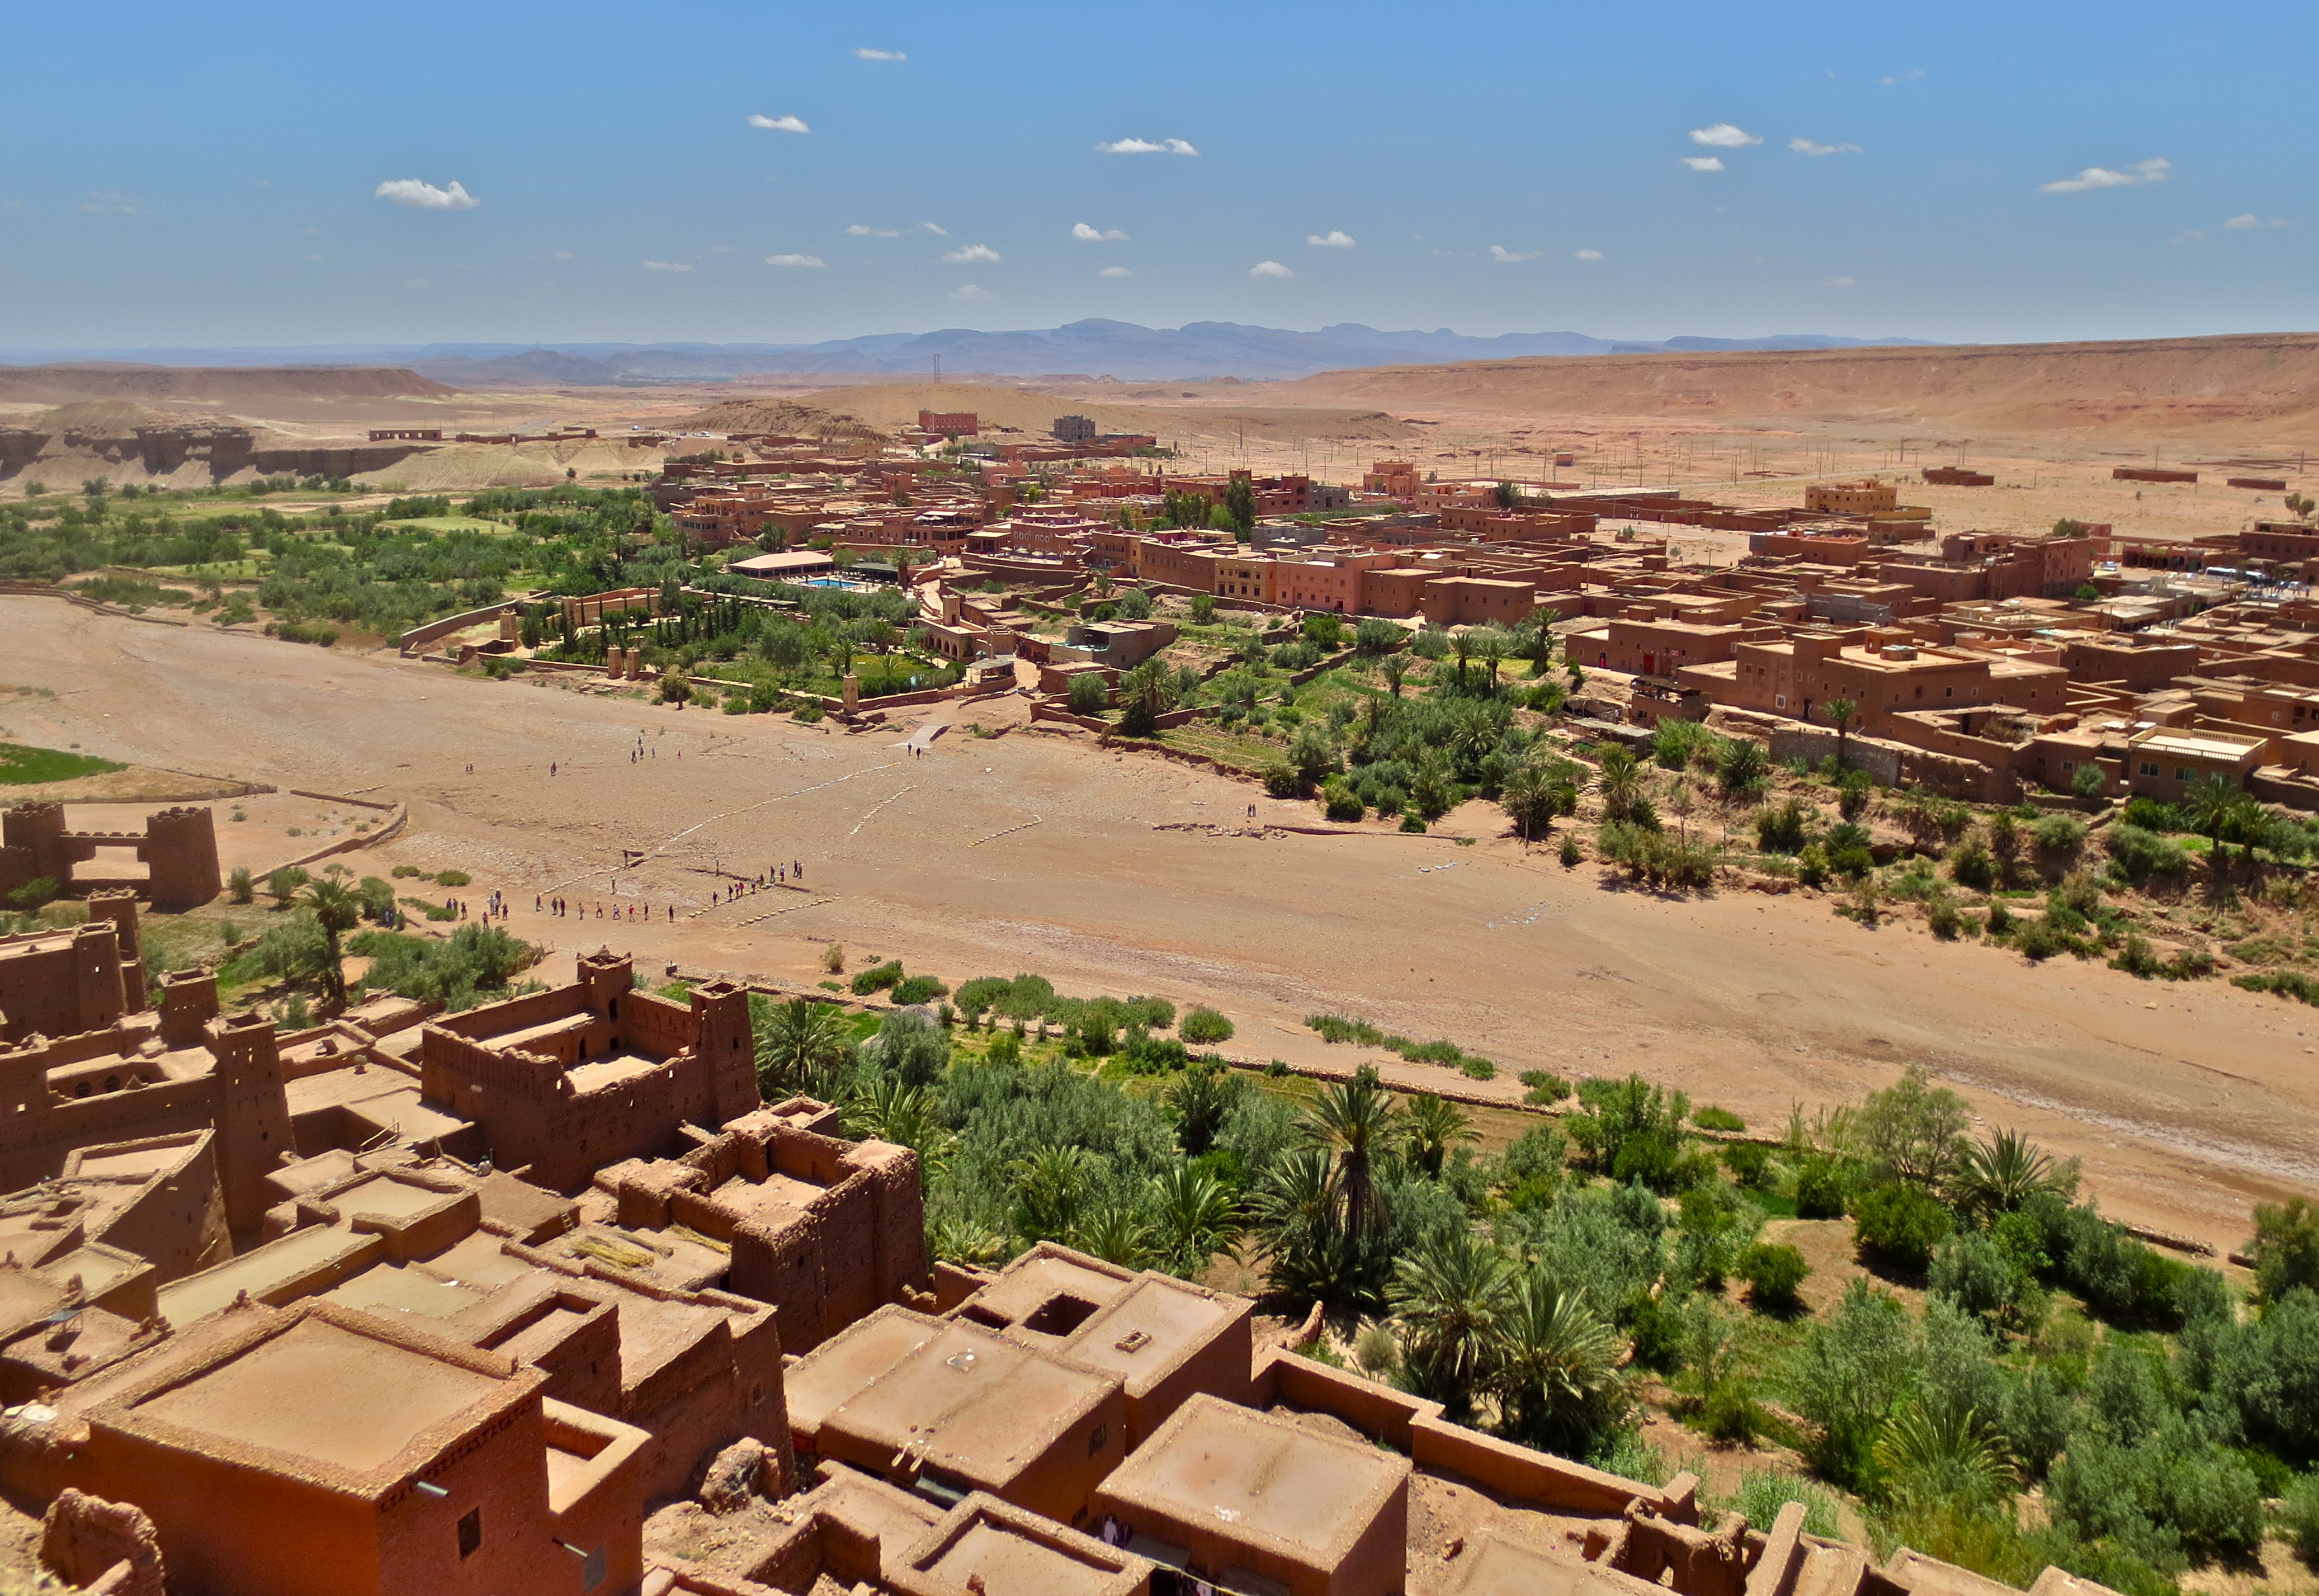 Looking down from the kasbah